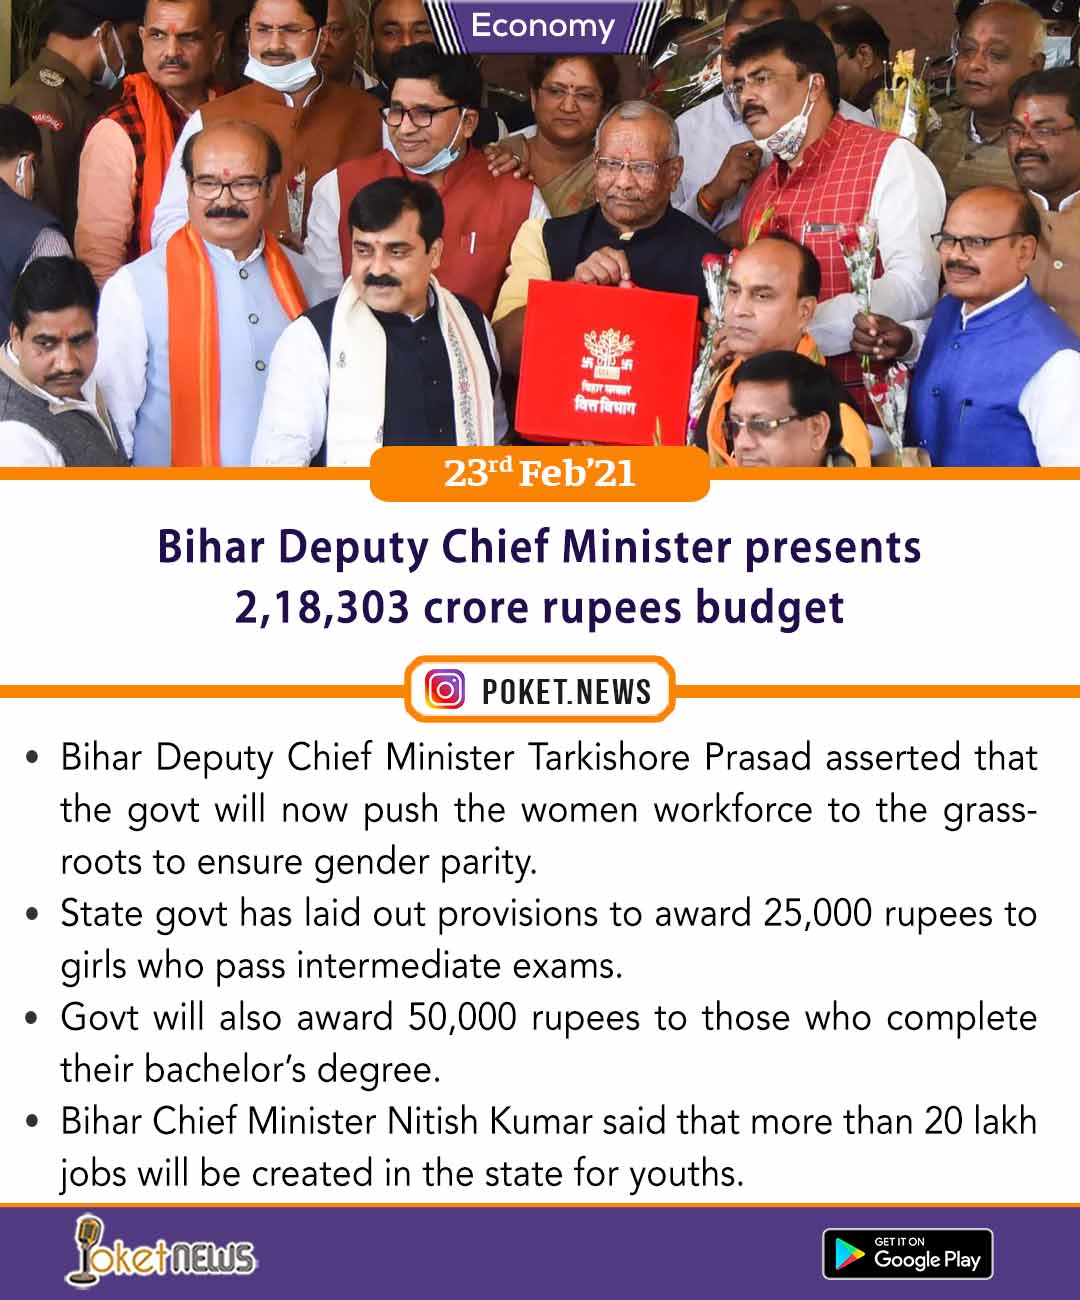 Bihar Deputy Chief Minister presents 2,18,303 crore rupees budget